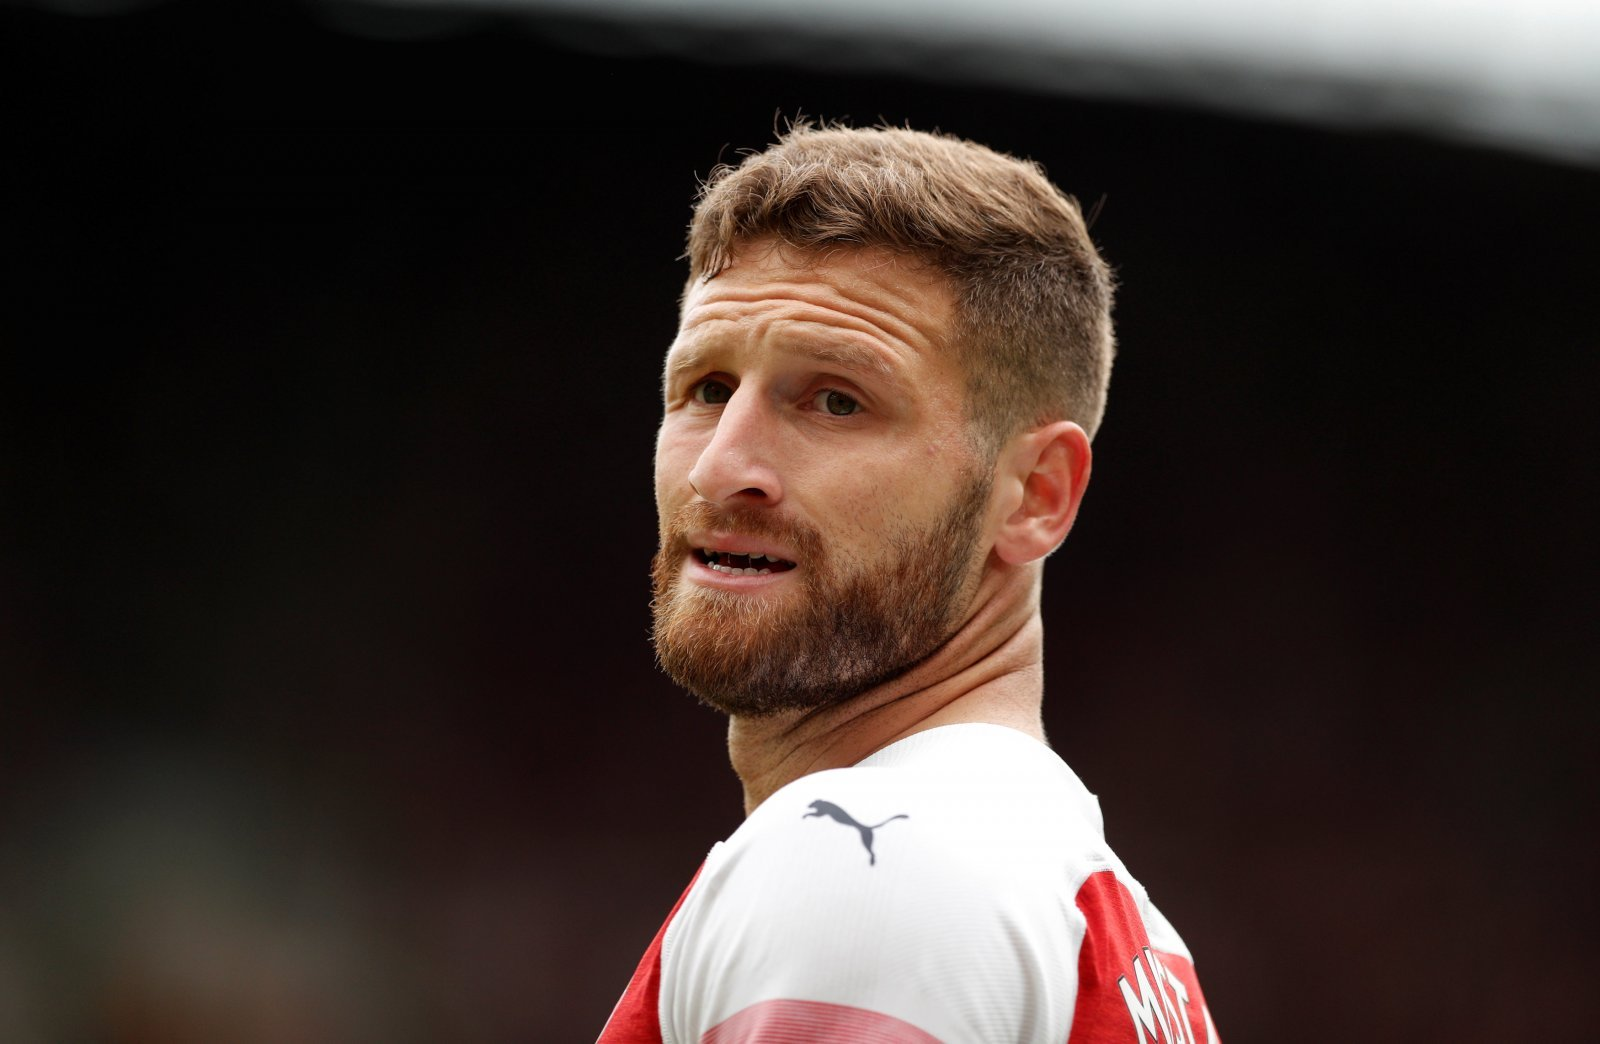 Arsenal fans take to Twitter to praise Mustafi on Newcastle display